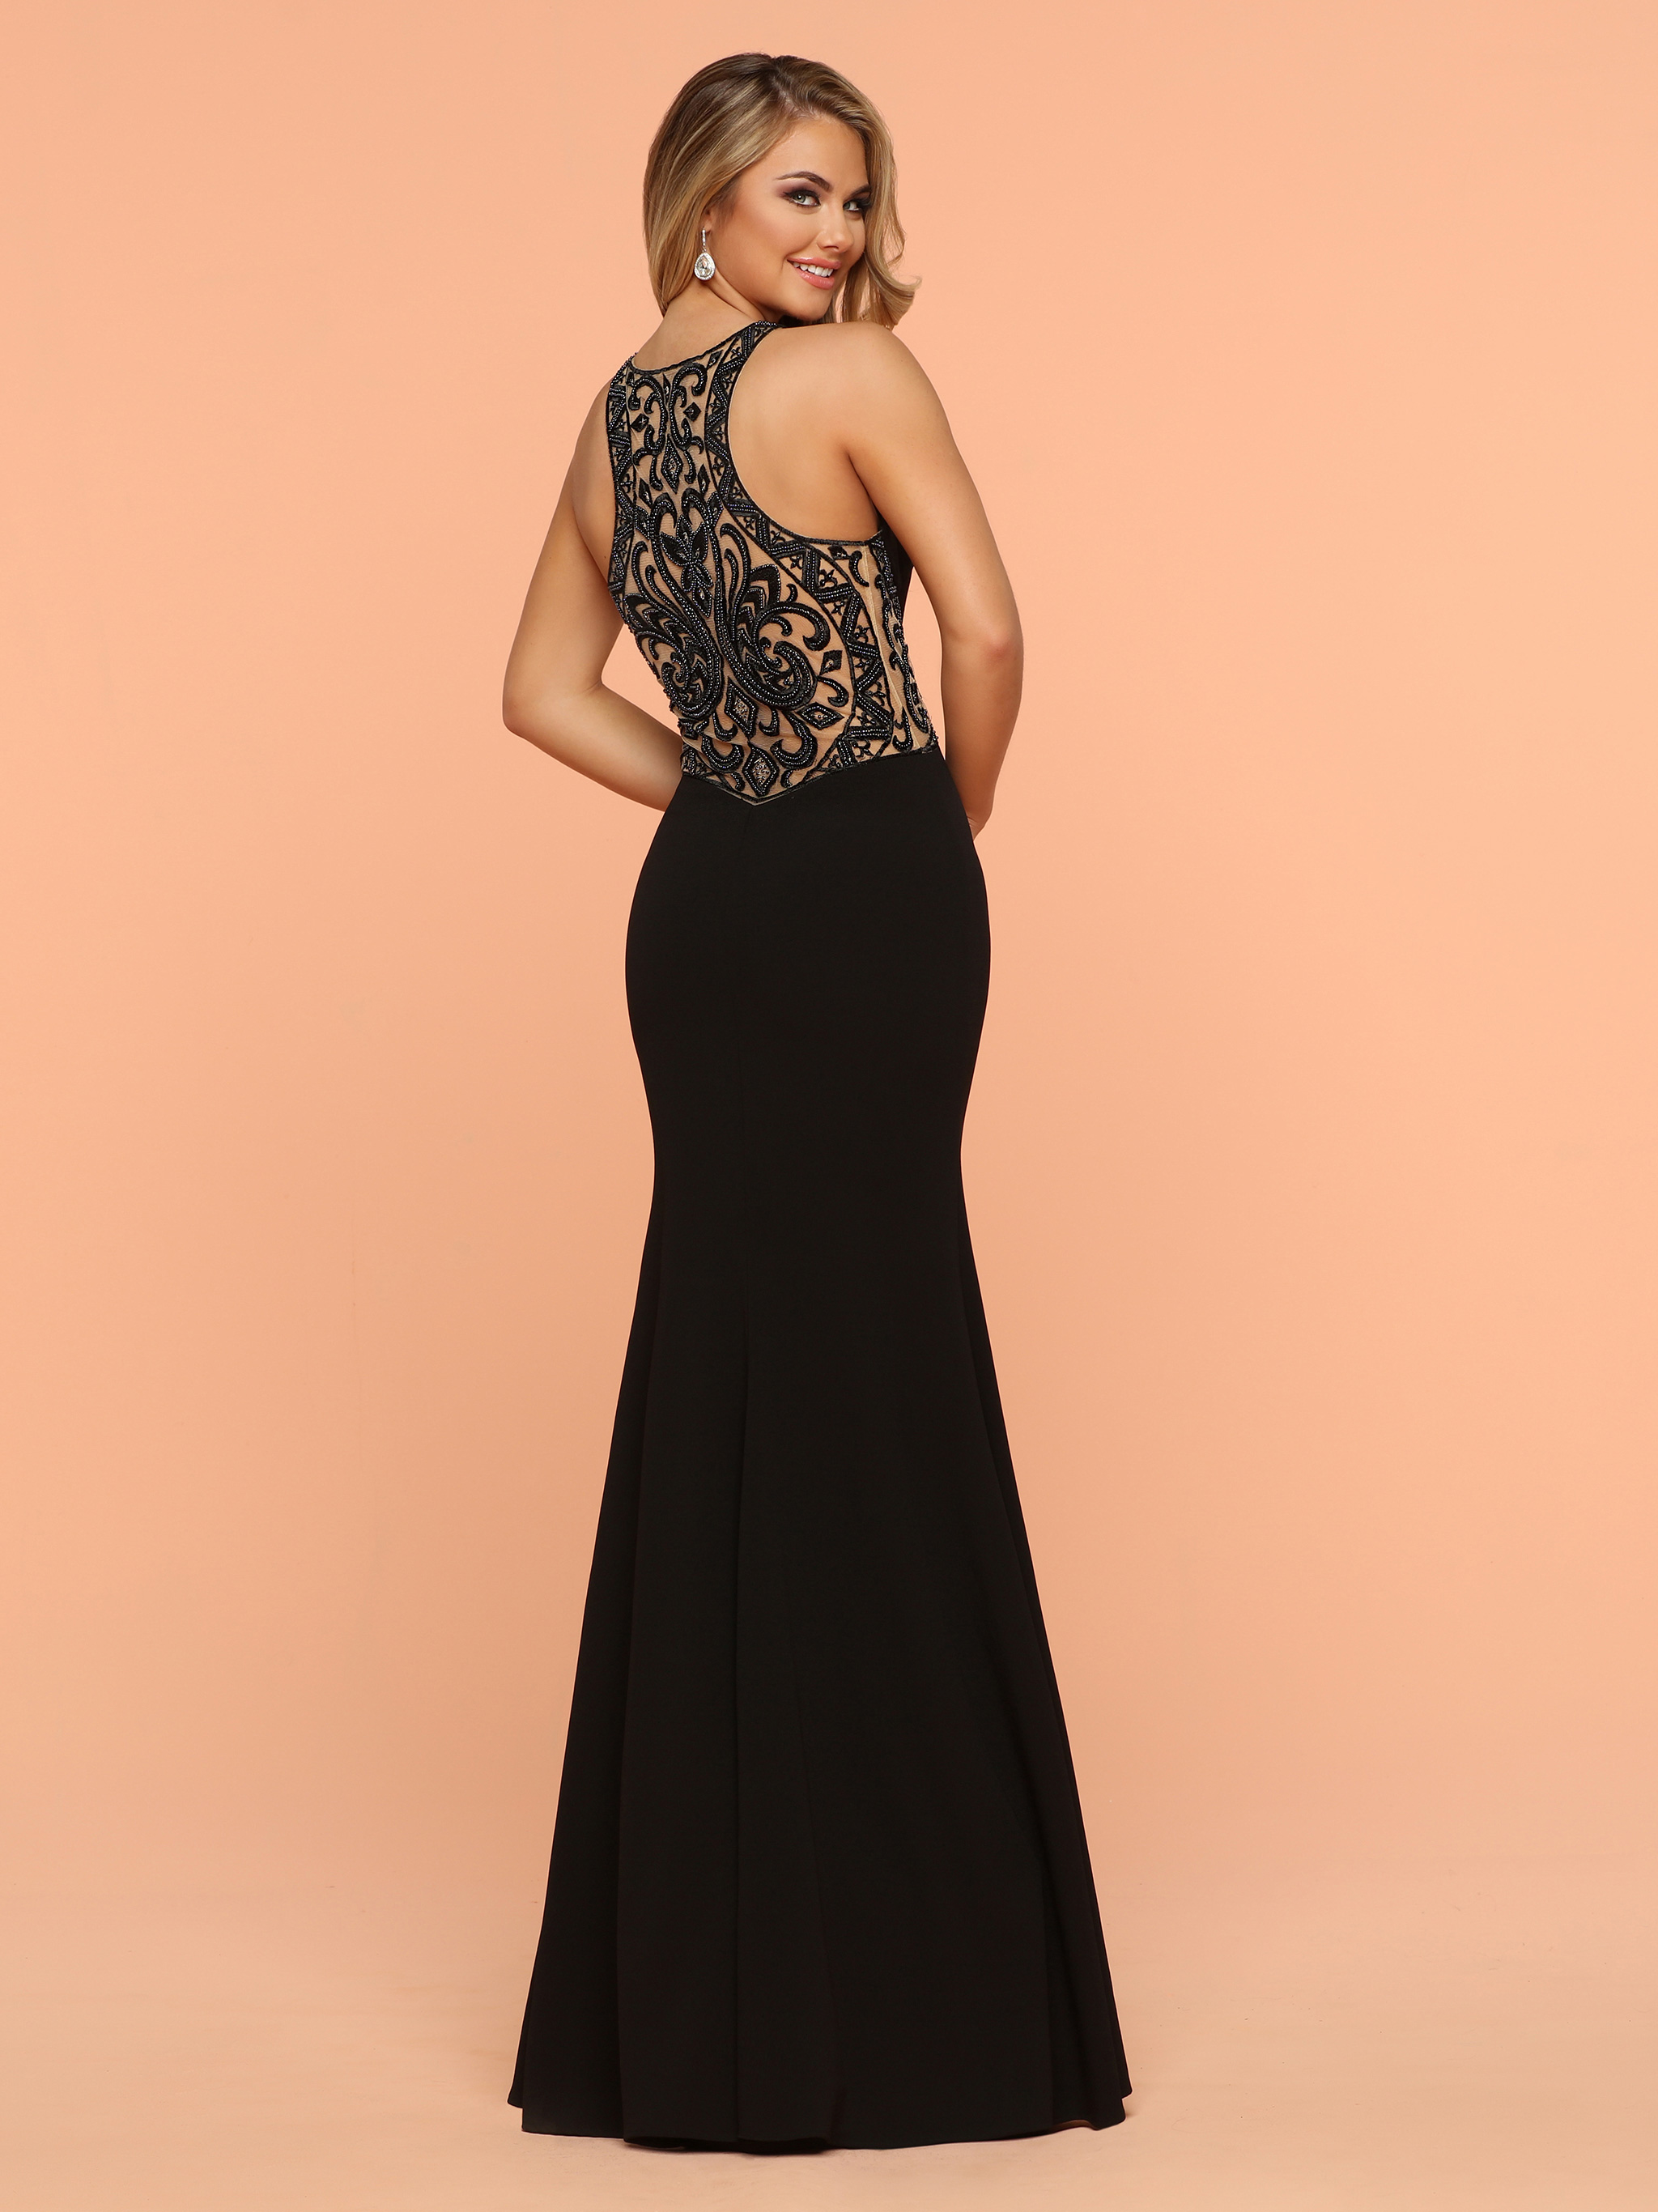 Image showing back view of style #71821